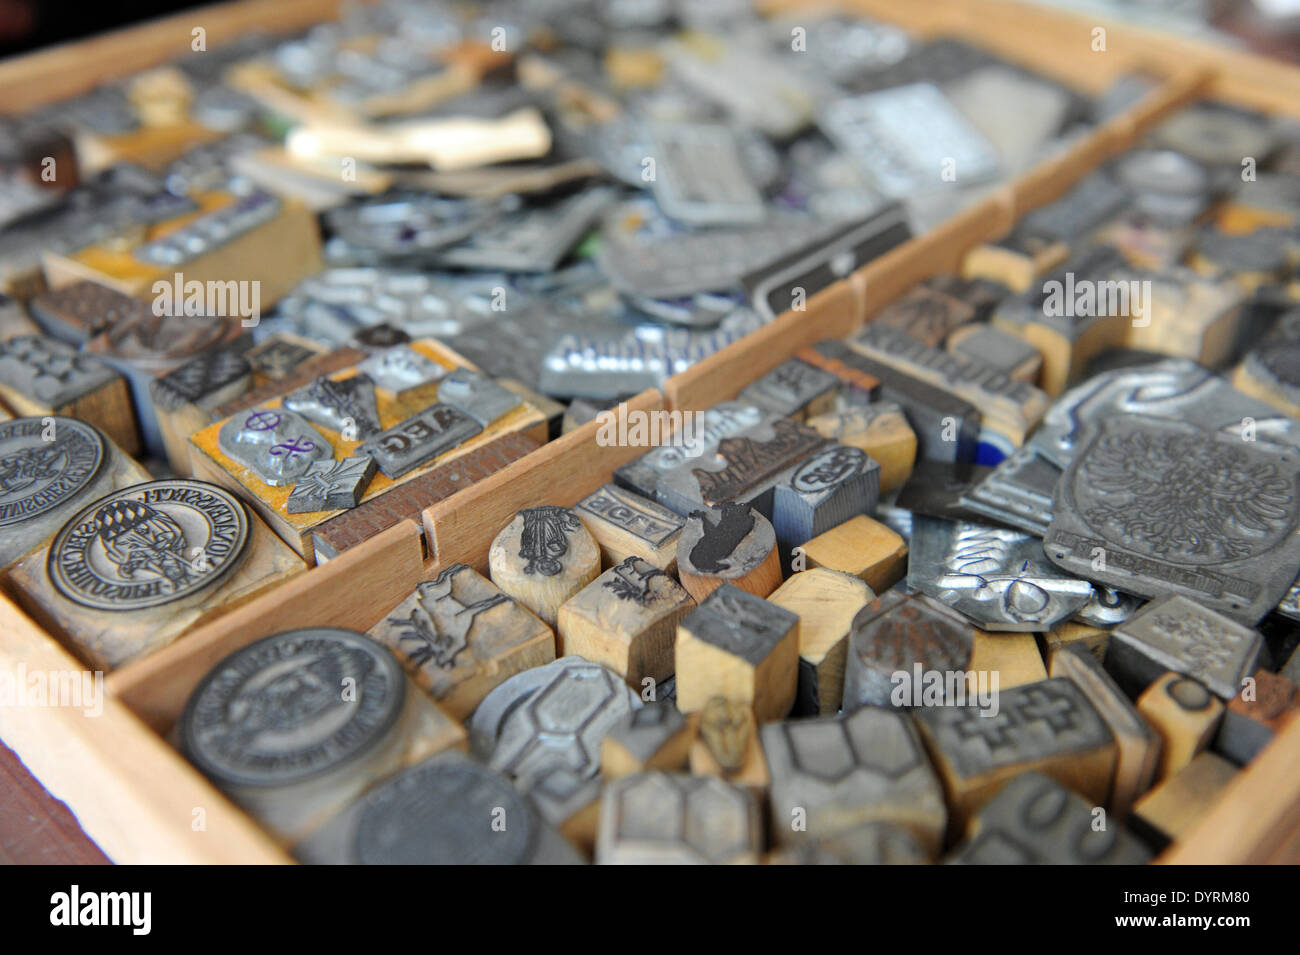 The 'Stempel Berger' in Munich closes down, 2012 - Stock Image